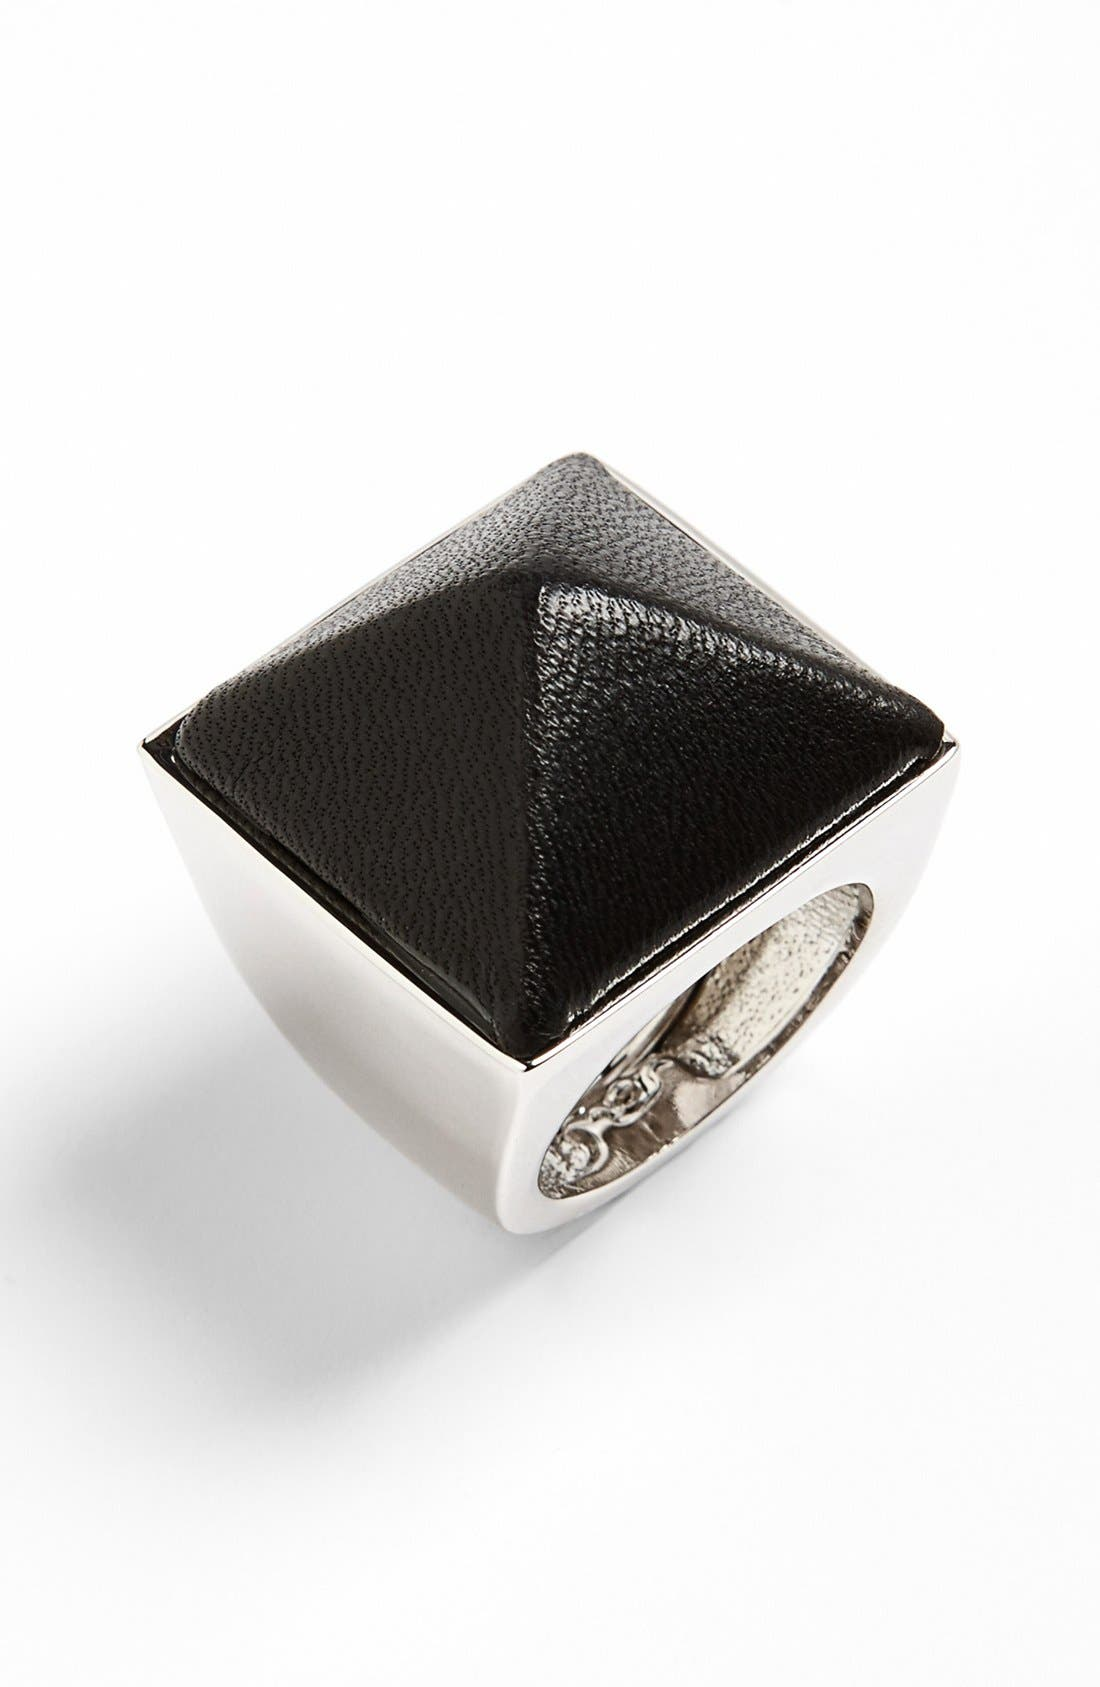 Main Image - Vince Camuto 'Blow Up Pyramid' Leather Stud Statement Ring